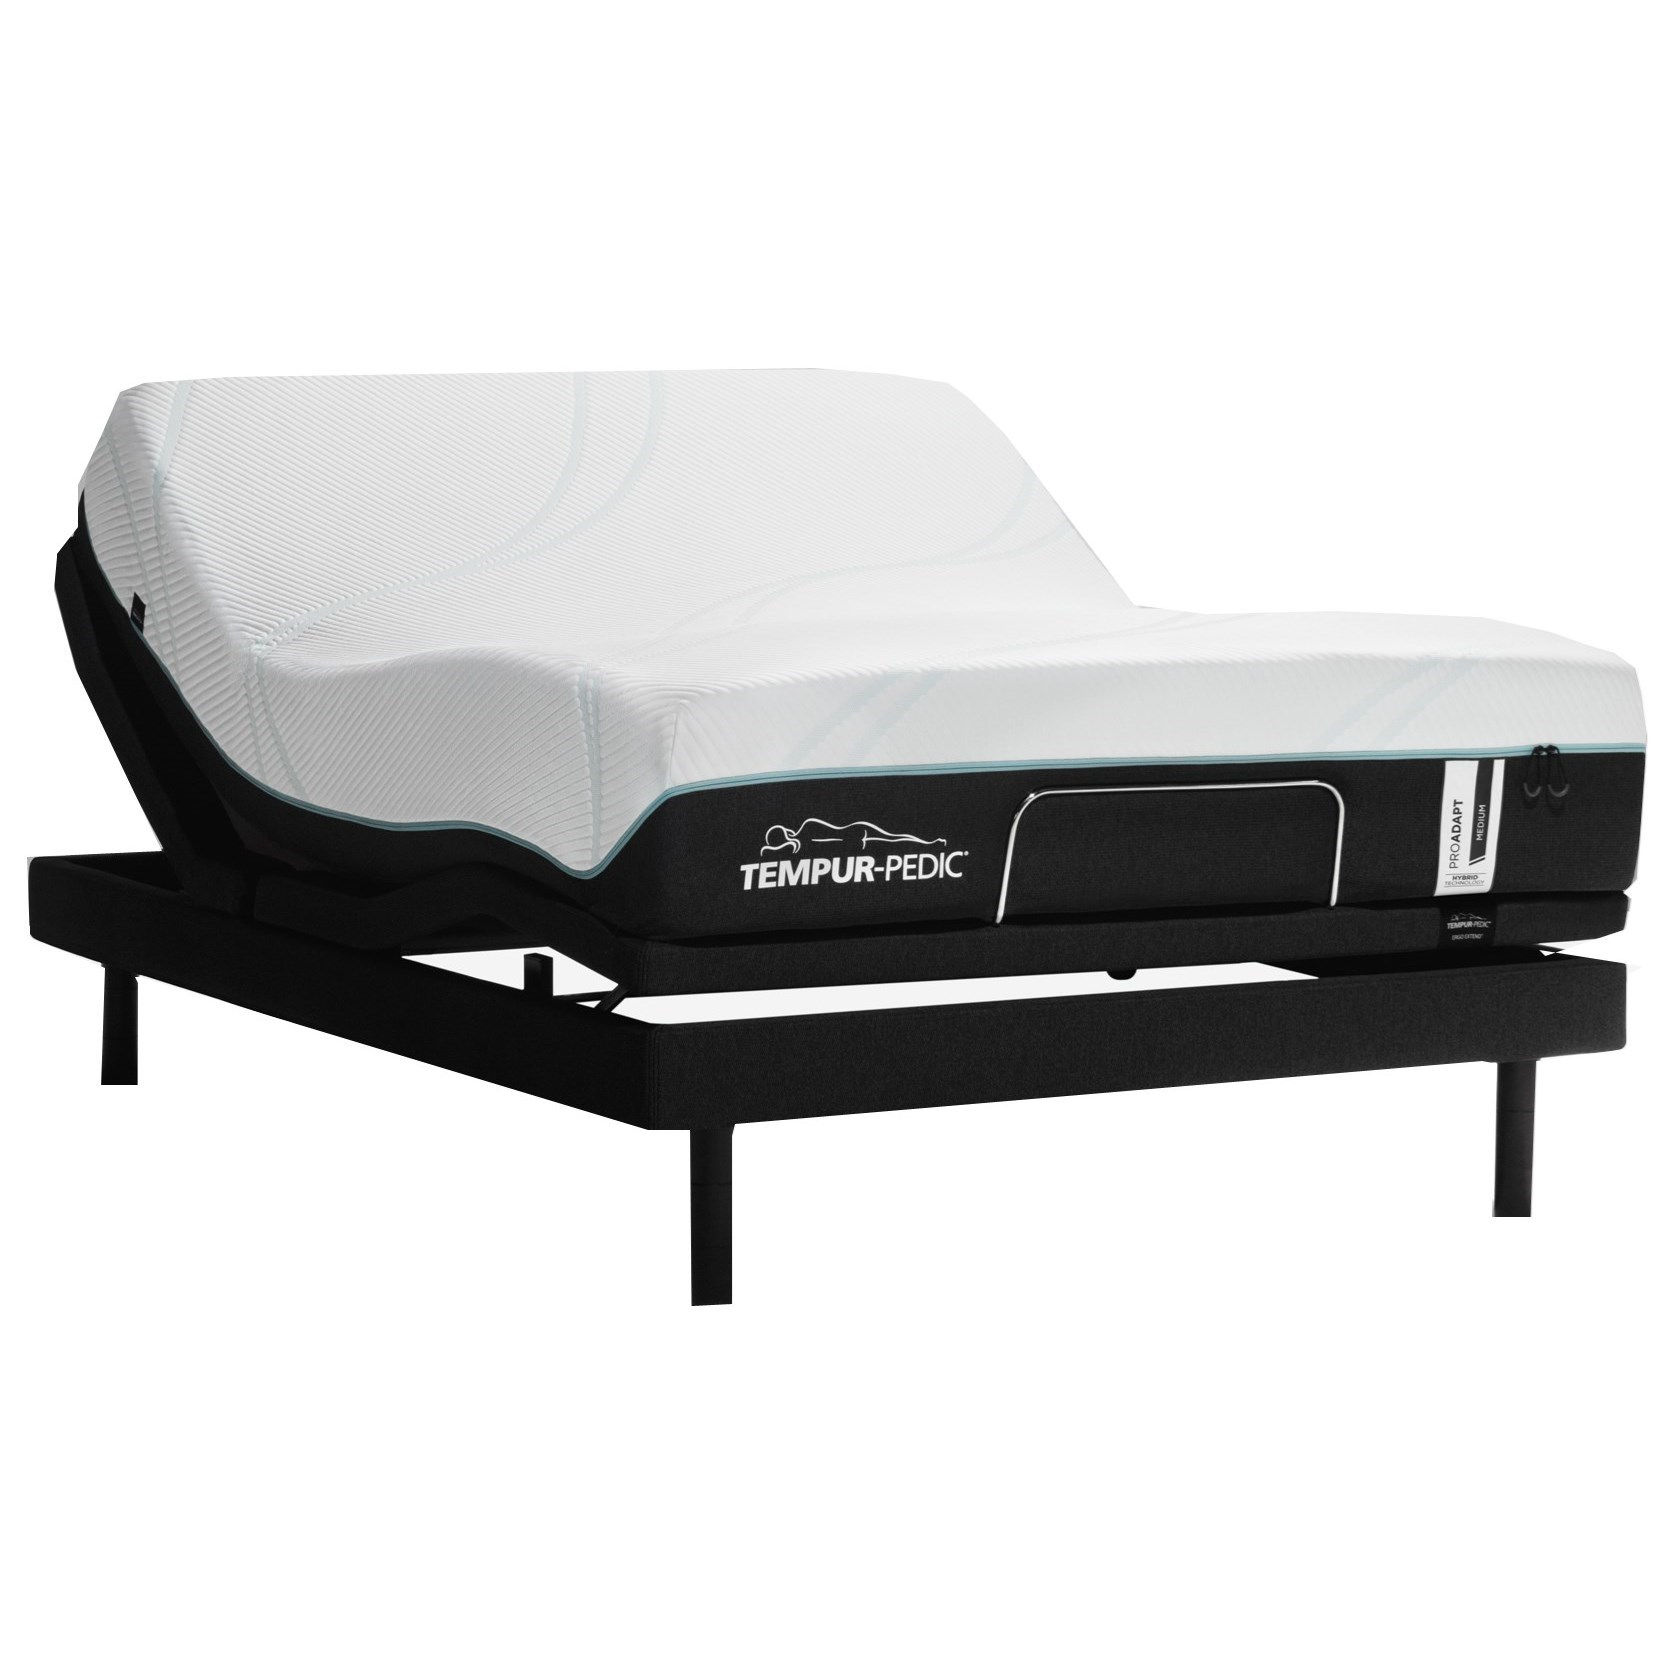 TEMPUR-PROADAPT™ Medium Hybrid Queen TEMPUR-PROADAPT™ Medium Hybrid Adj Set by Tempur-Pedic® at SlumberWorld